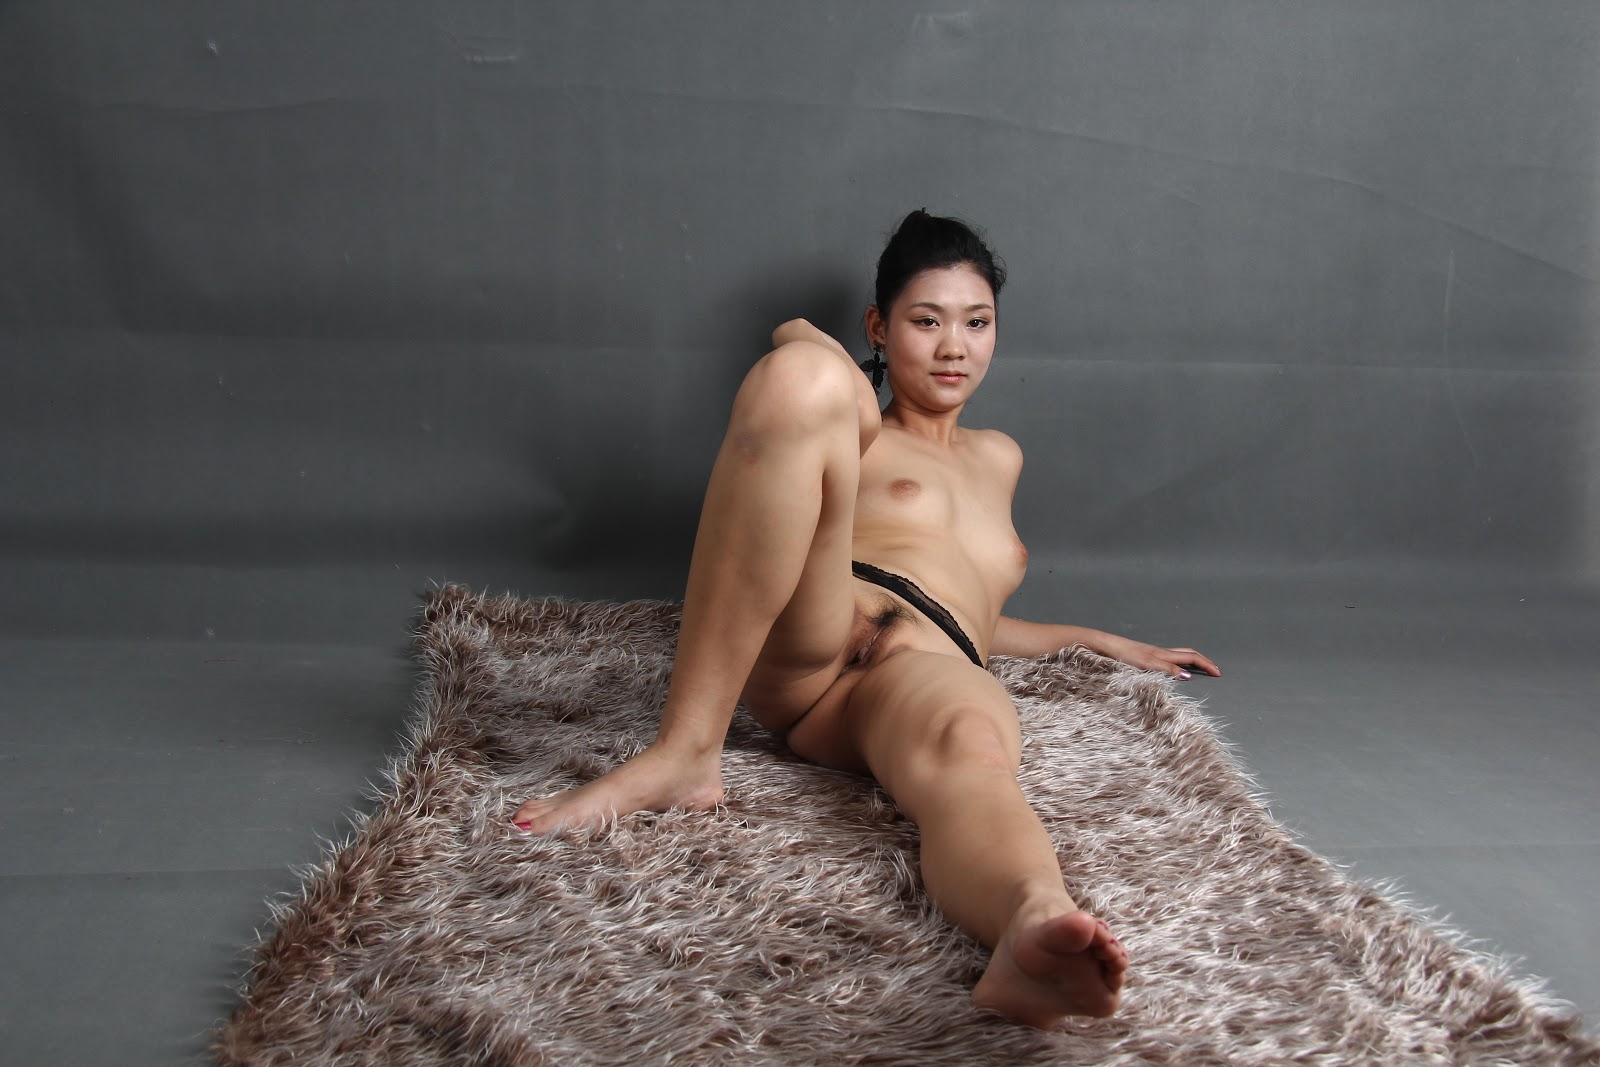 Chinese Nude_Art_Photos_-_258_-_YangYang_Vol_7.rar